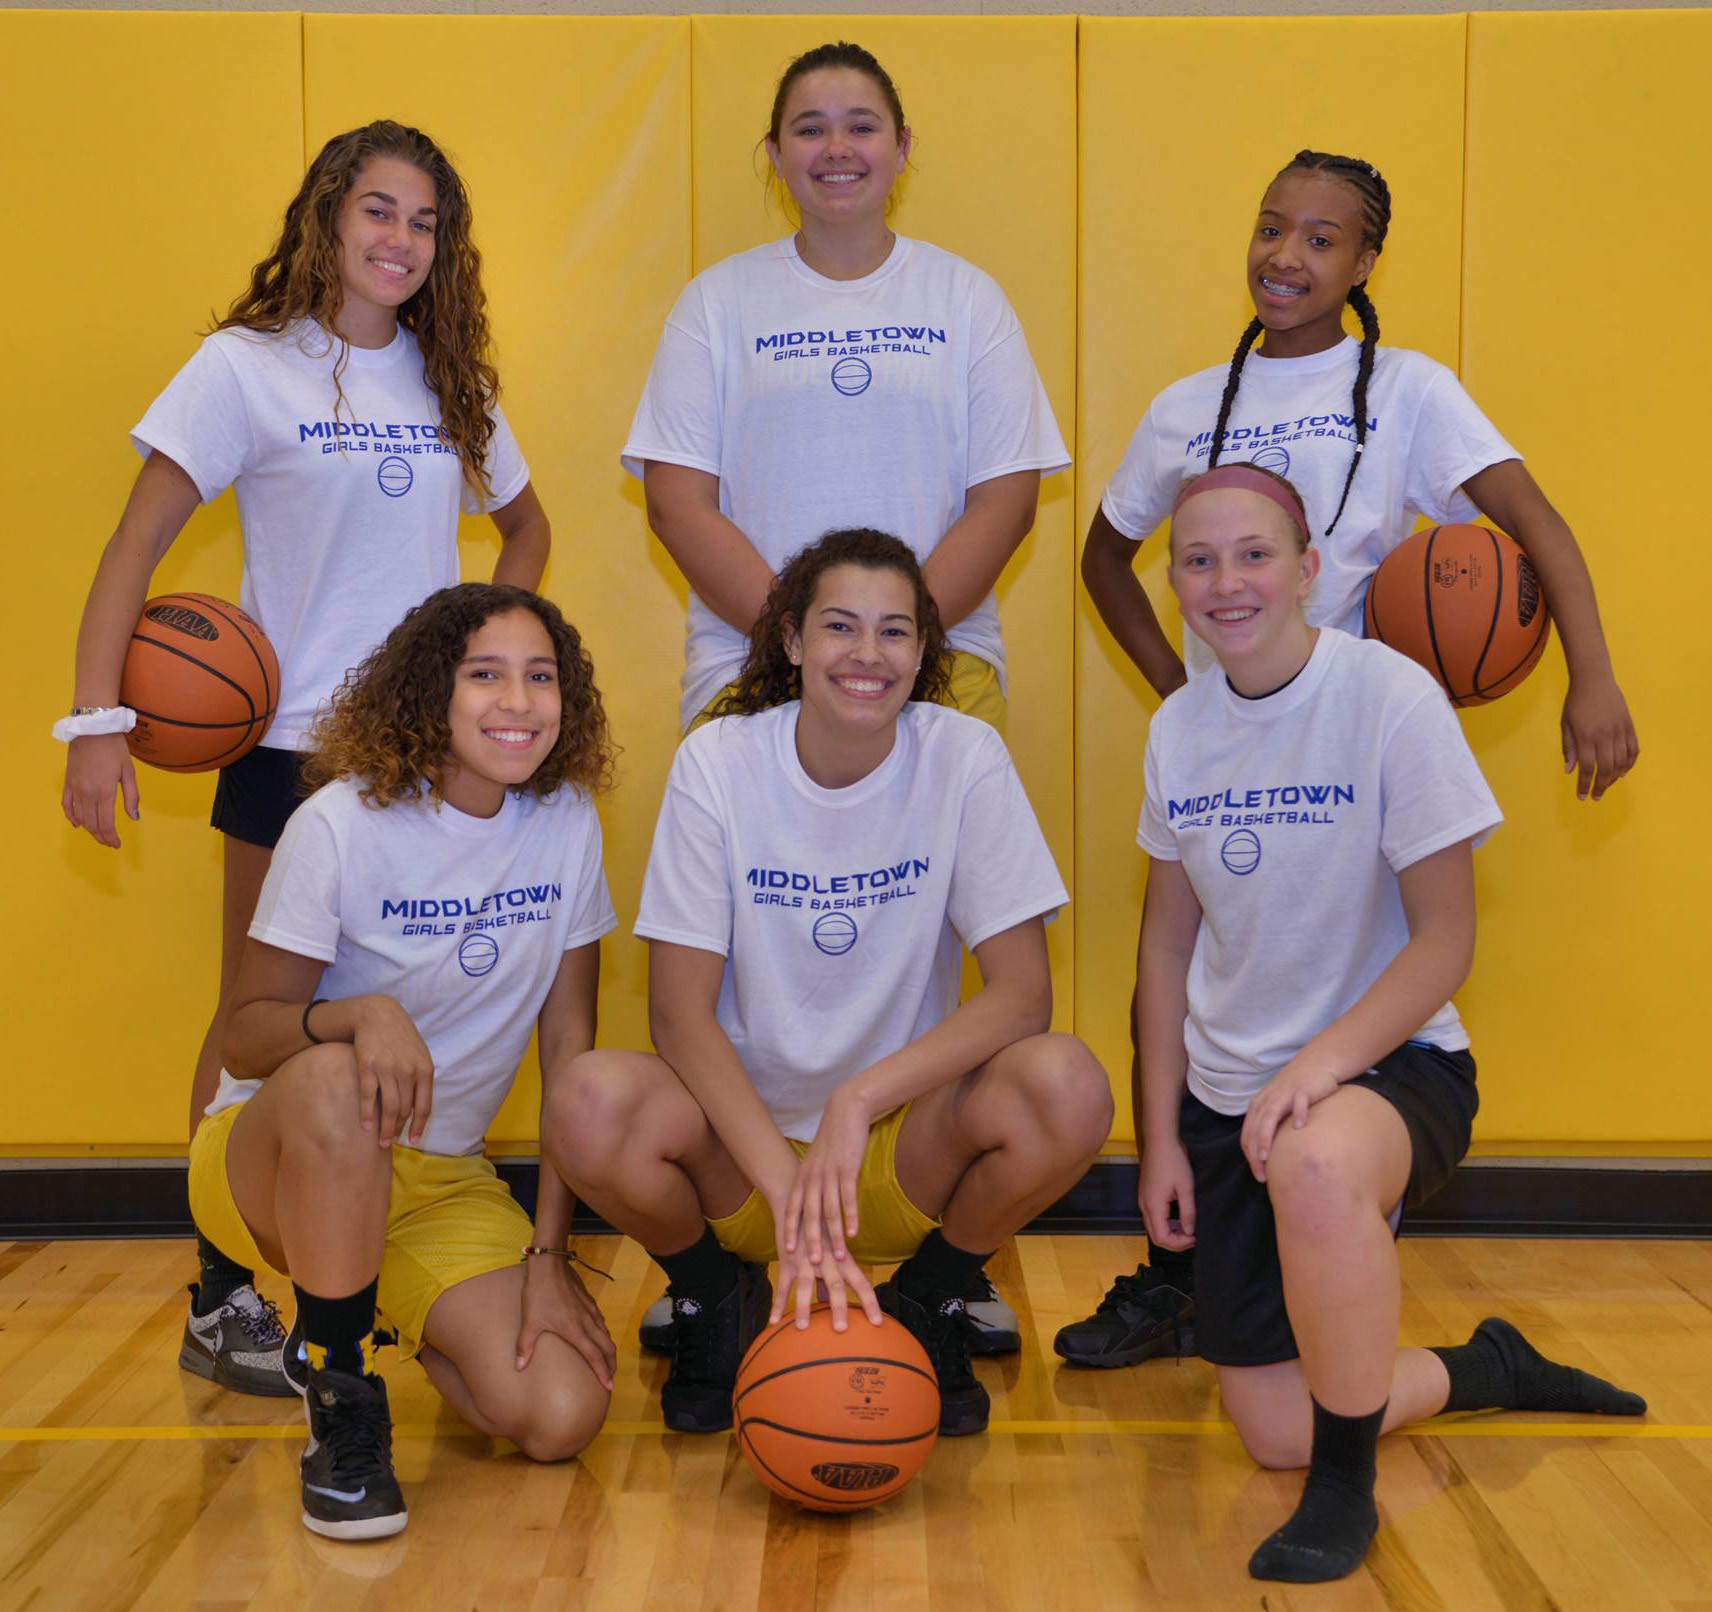 Middletown Area High School basketball players who took part in helping at the clinic included, back row, Makaila Nester, Caroline Gill and Nakia Scott; and front row, Jocelyn Koser, Jaelynn Keller and Kate Fitzpatrick.